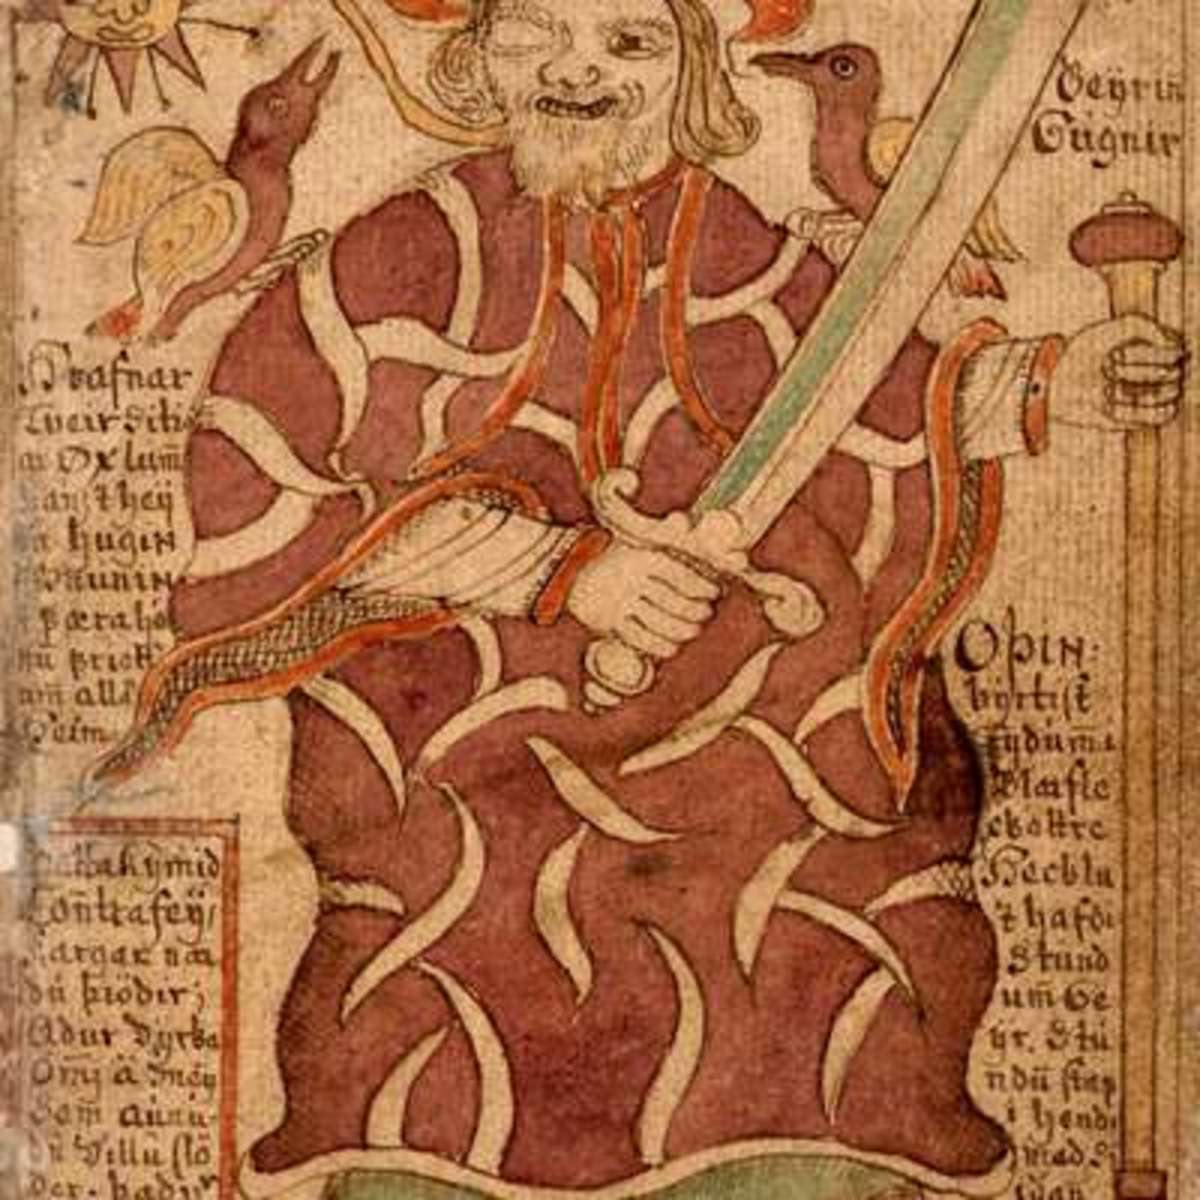 VIKING - 33: KORMAK,  Ill-fated Icelandic Wordsmith Who Comes To Grief Battling With A Pictish Giant